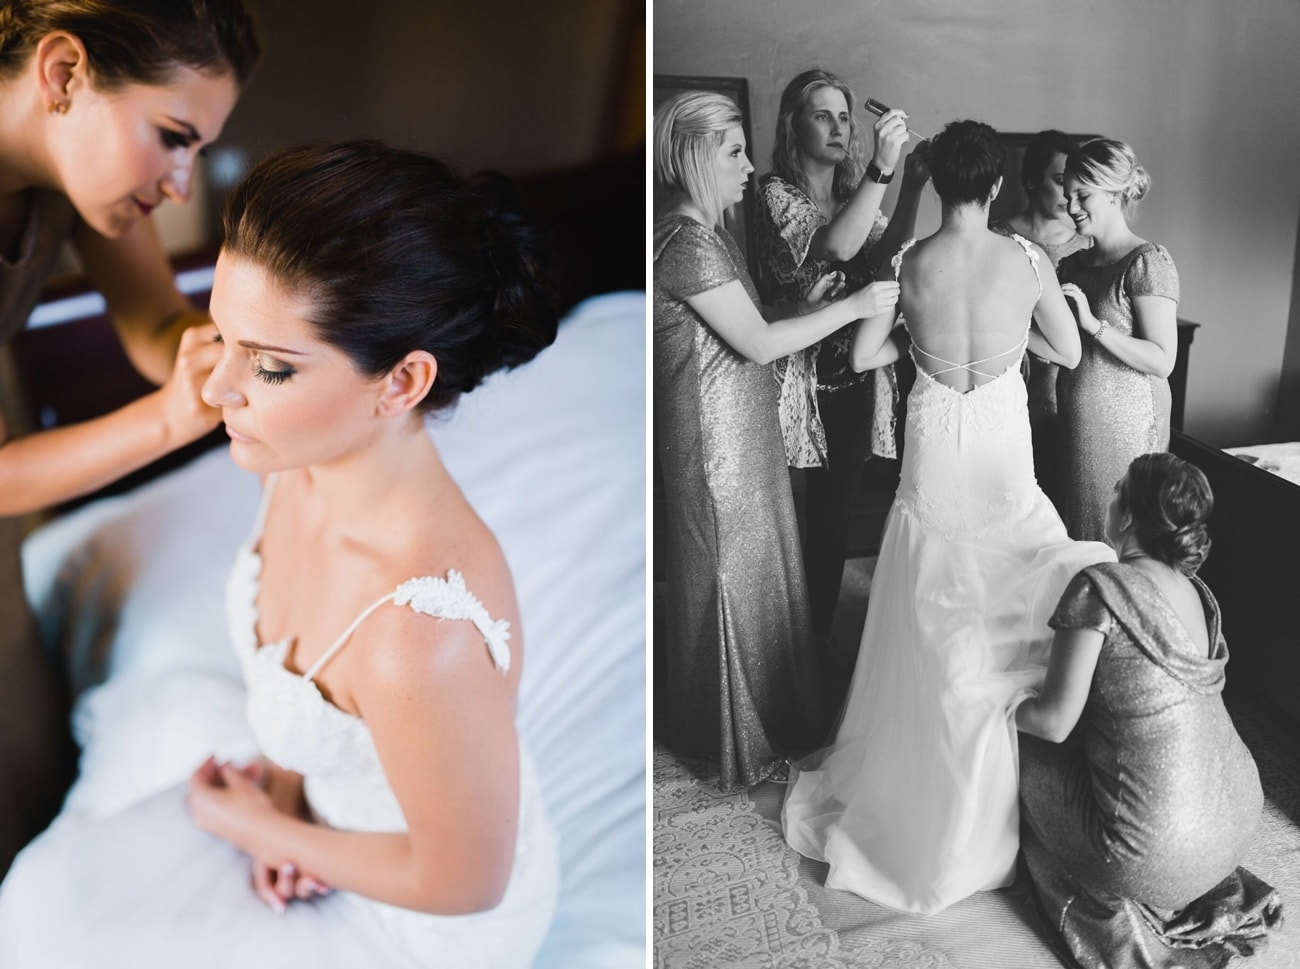 Bride getting ready | Credit: Matthew Carr